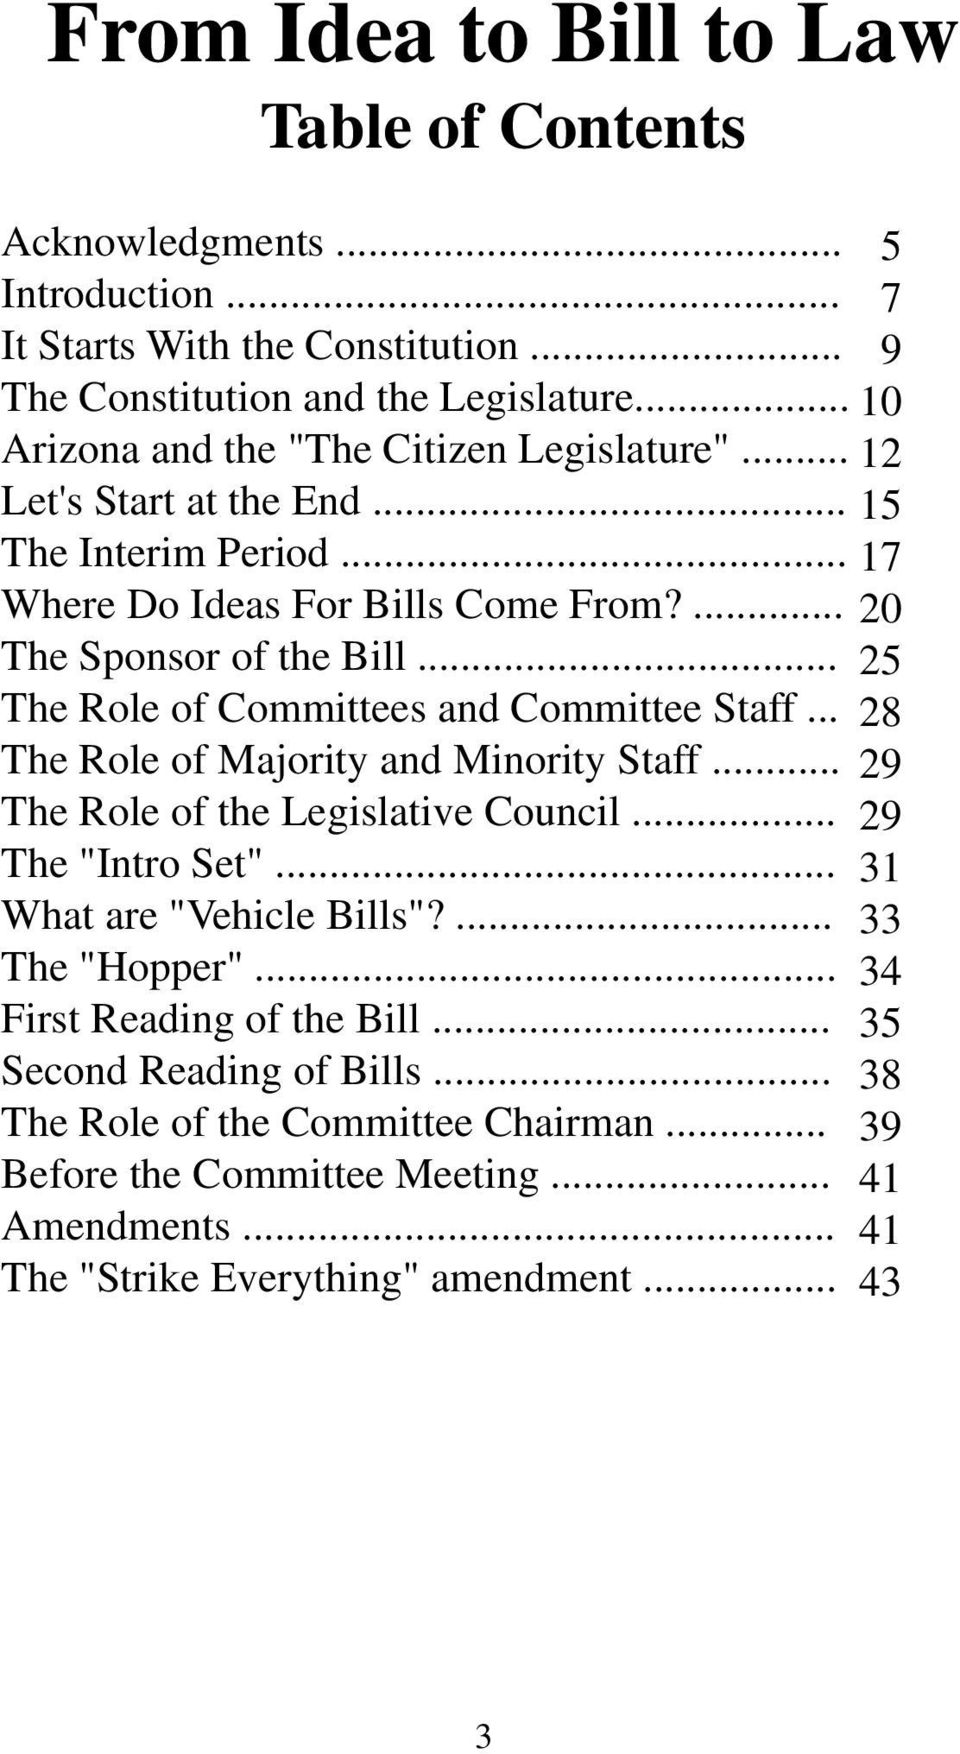 ".. The Role of Committees and Committee Staff... The Role of Majority and Minority Staff... The Role of the Legislative Council... The ""Intro Set""... What are ""Vehicle Bills""?"